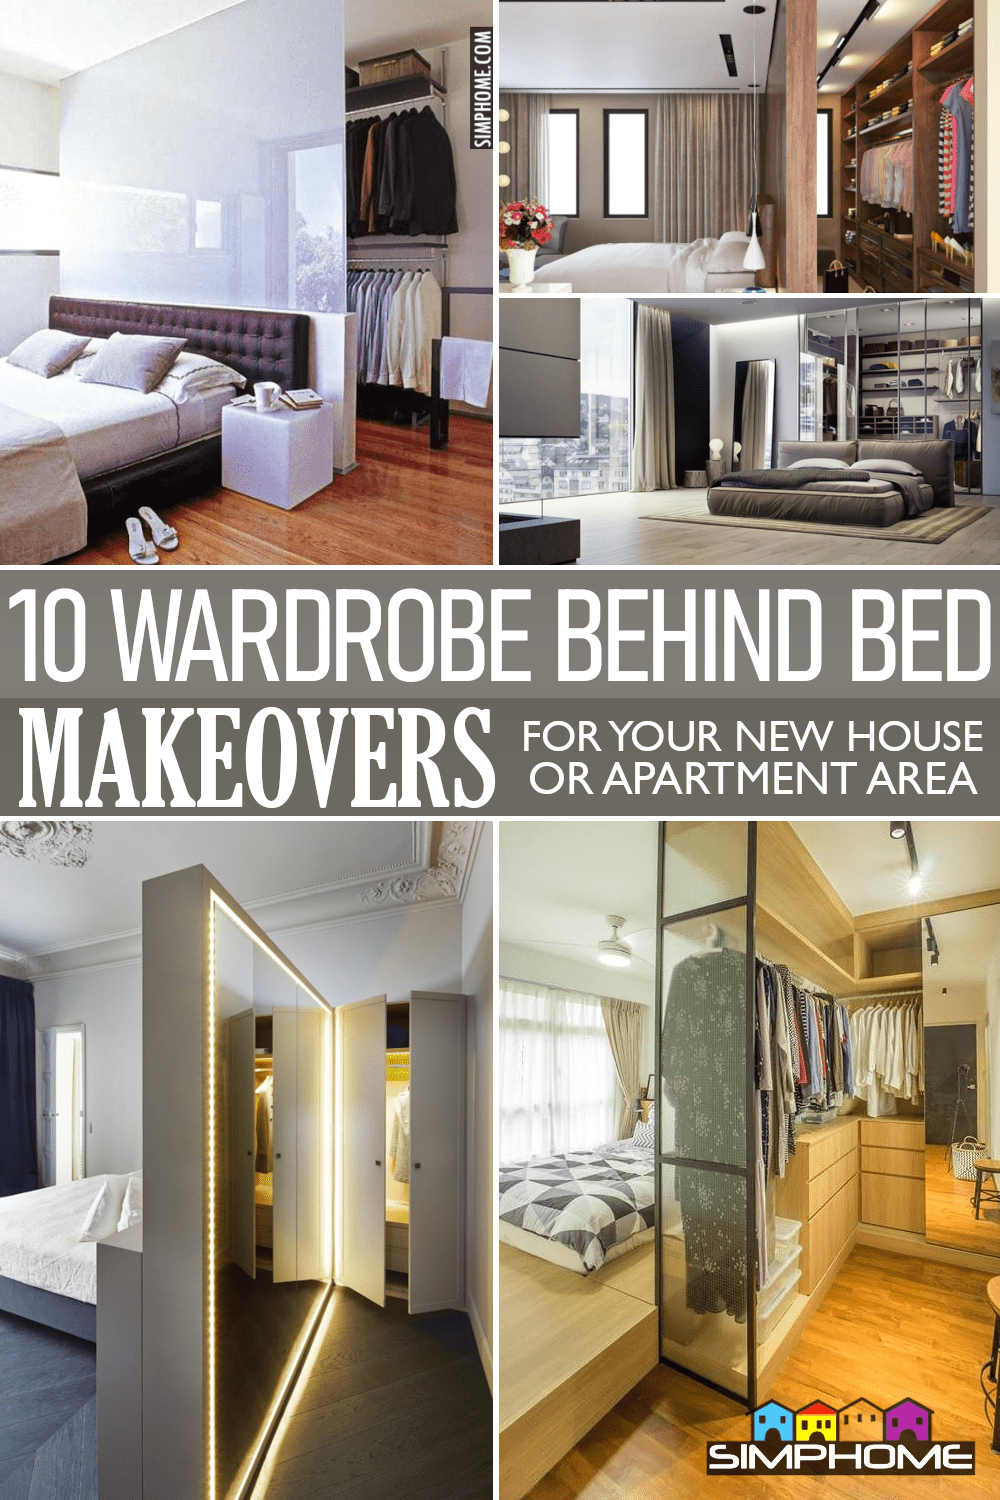 10 Wardrobe Behind Bed Ideas via Simphome.comFeatured image